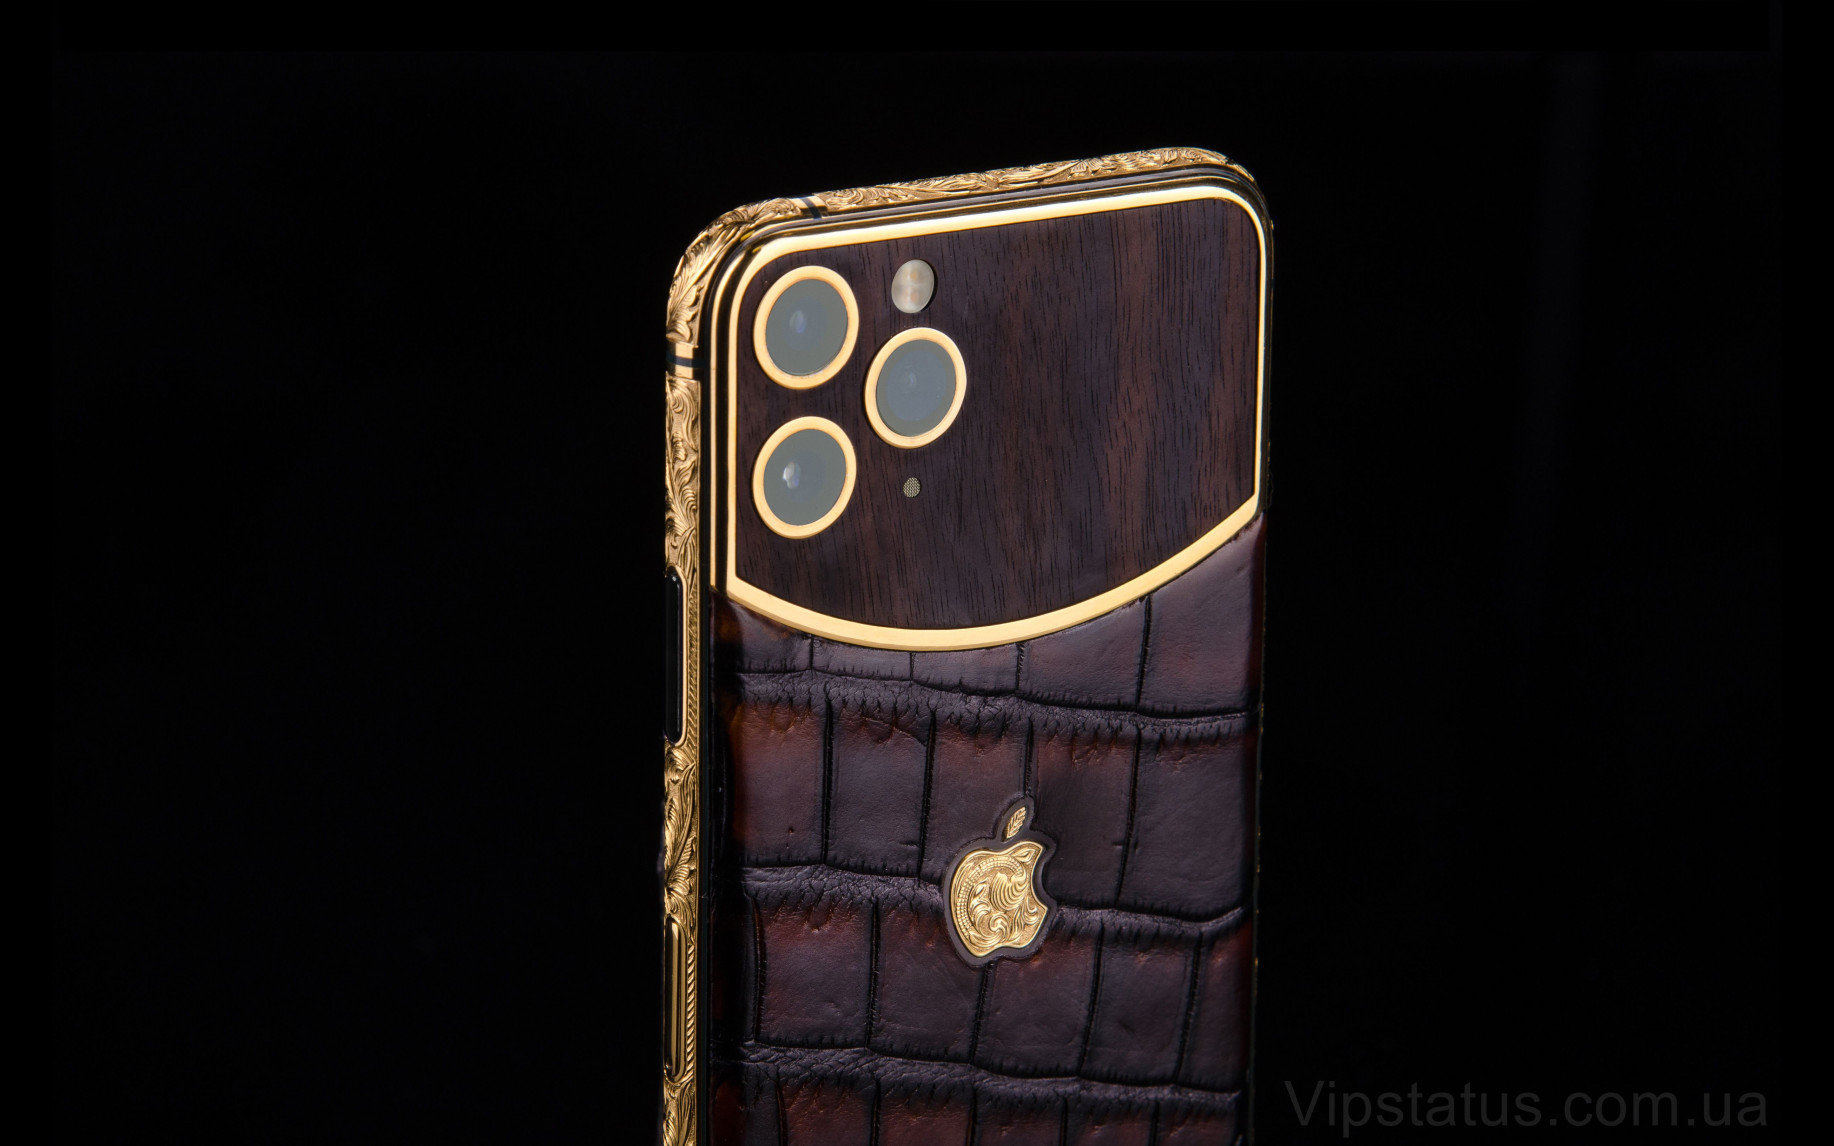 Elite Brown Edition IPHONE XS 512 GB Brown Edition IPHONE XS 512 GB image 2